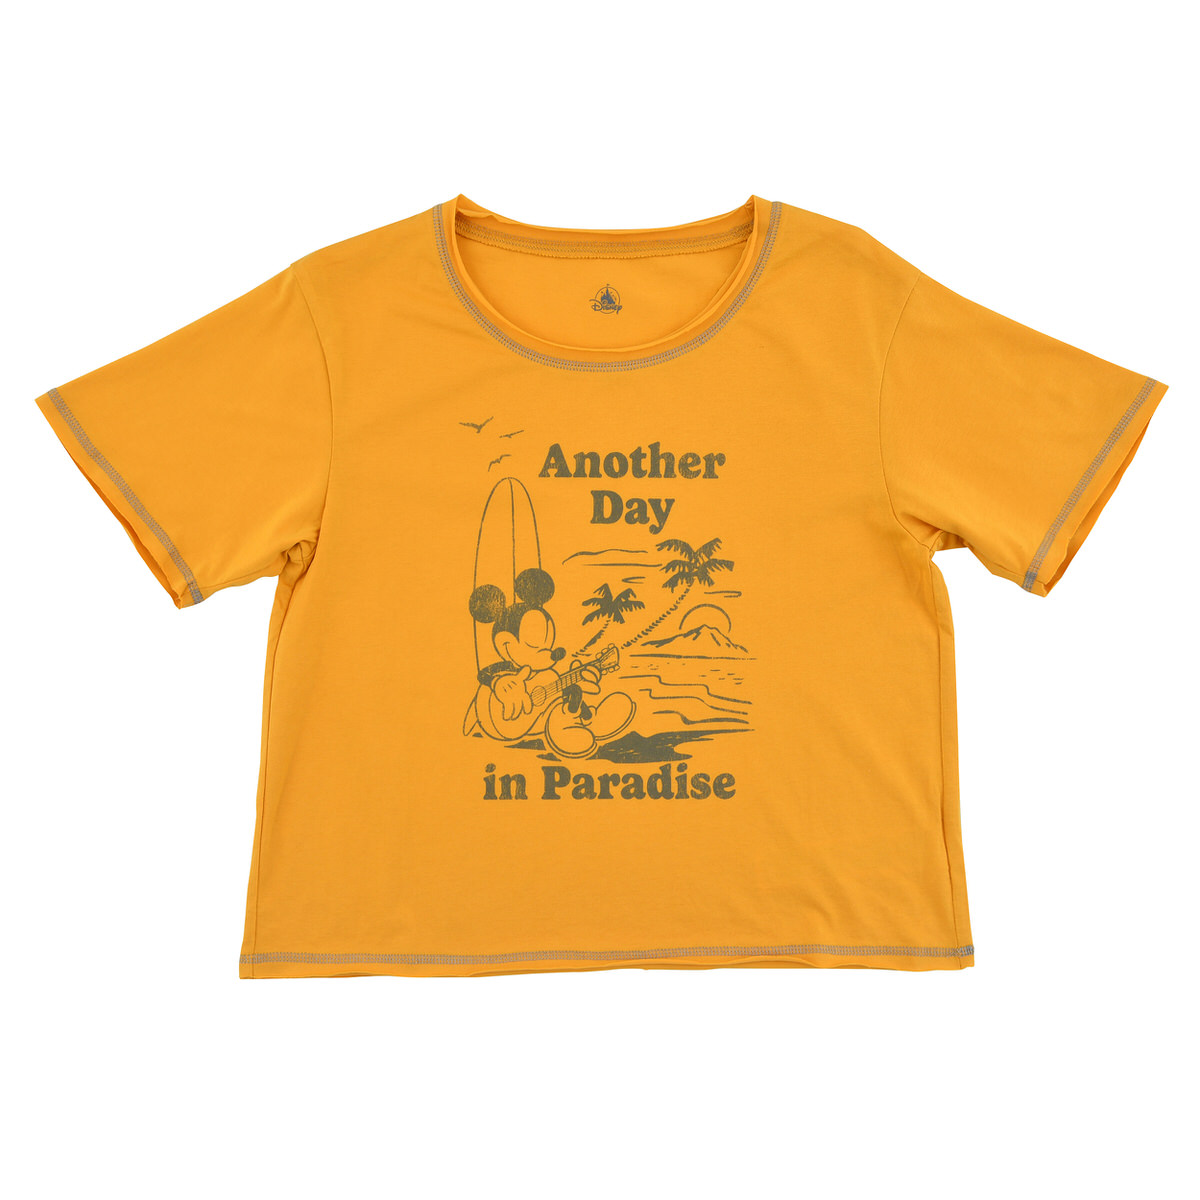 Tシャツ(Another Day in Paradise)